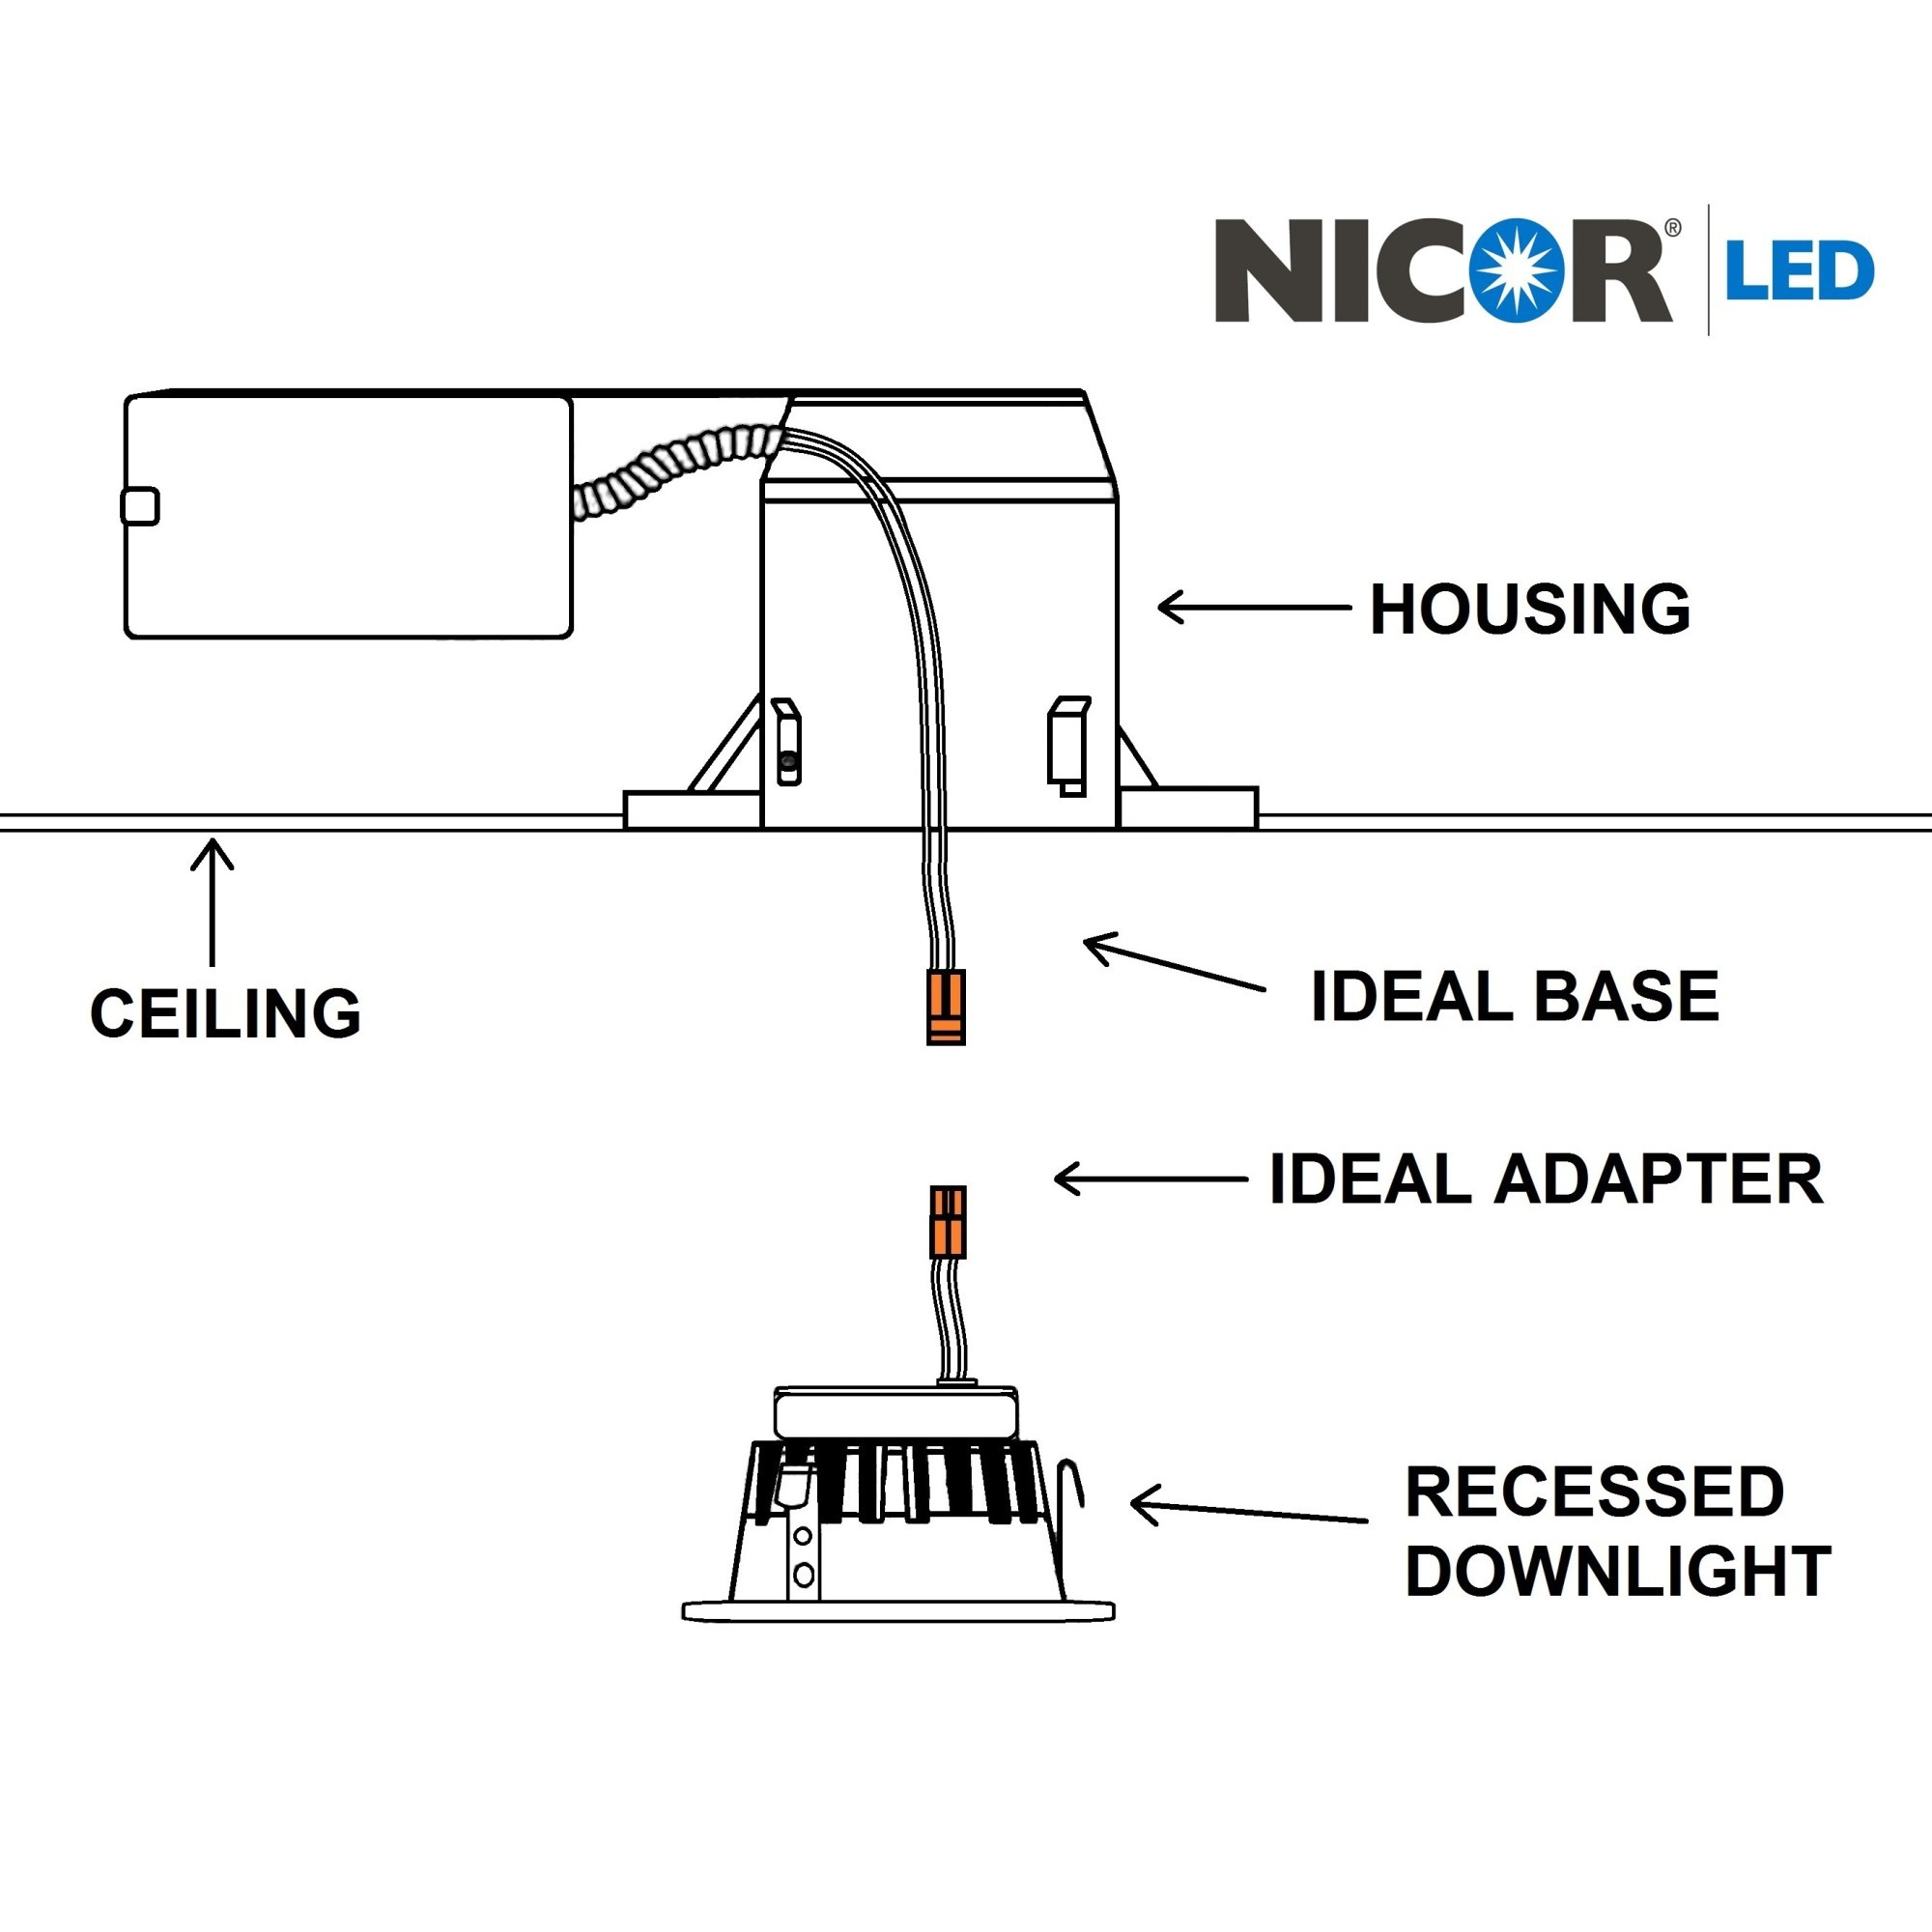 Nicor Dlr2 10 120 3k Nk Bf K 2 Inch Recessed Led Downlig